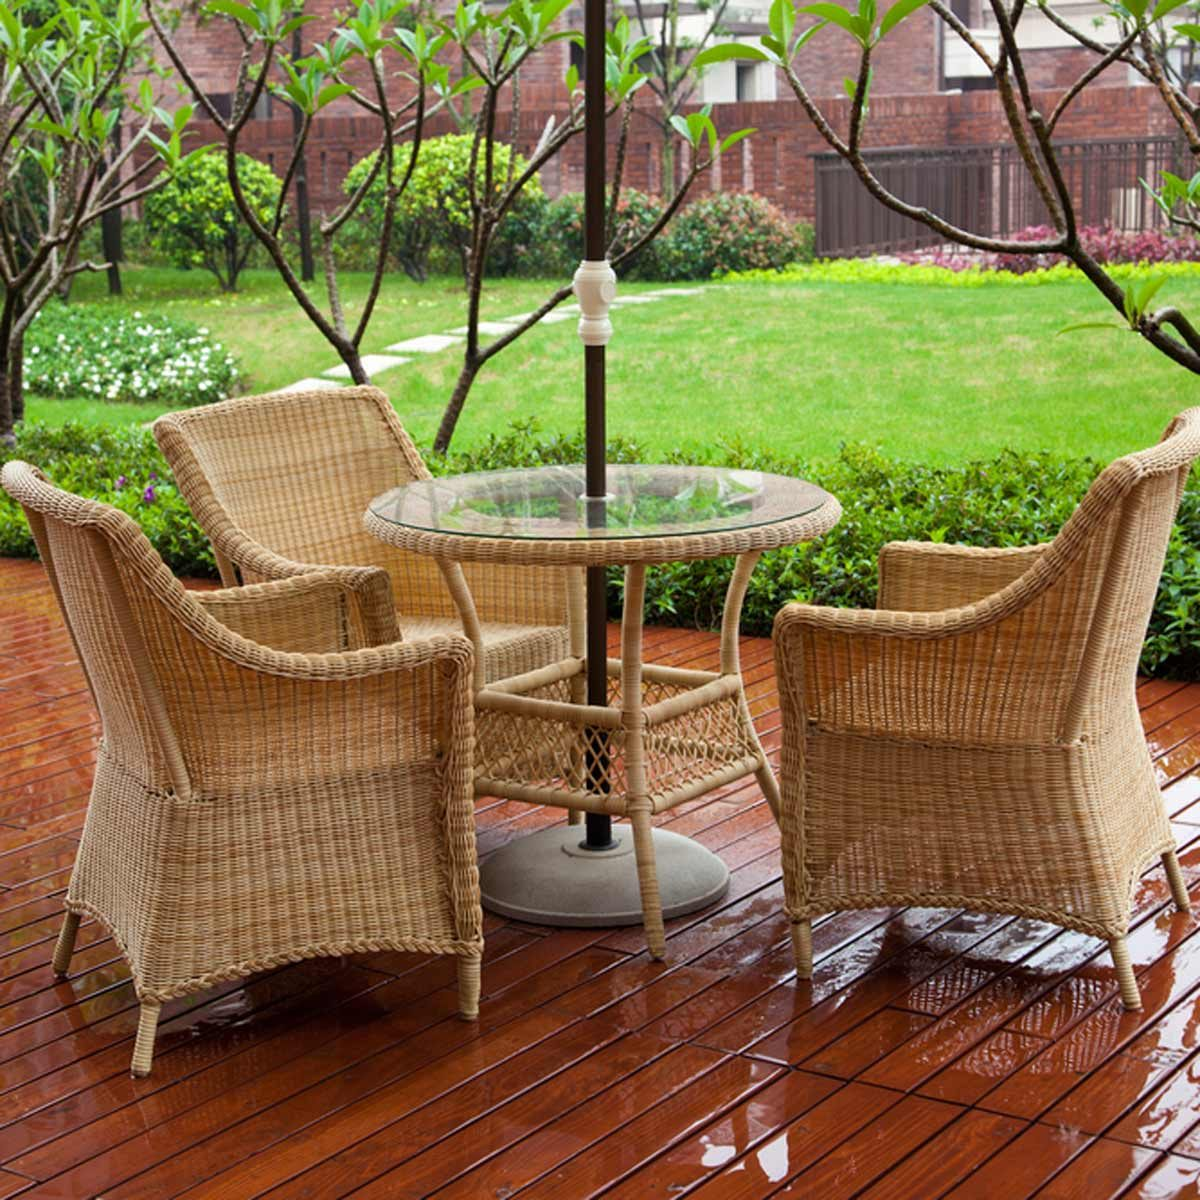 Prepare Your Outdoor Furniture